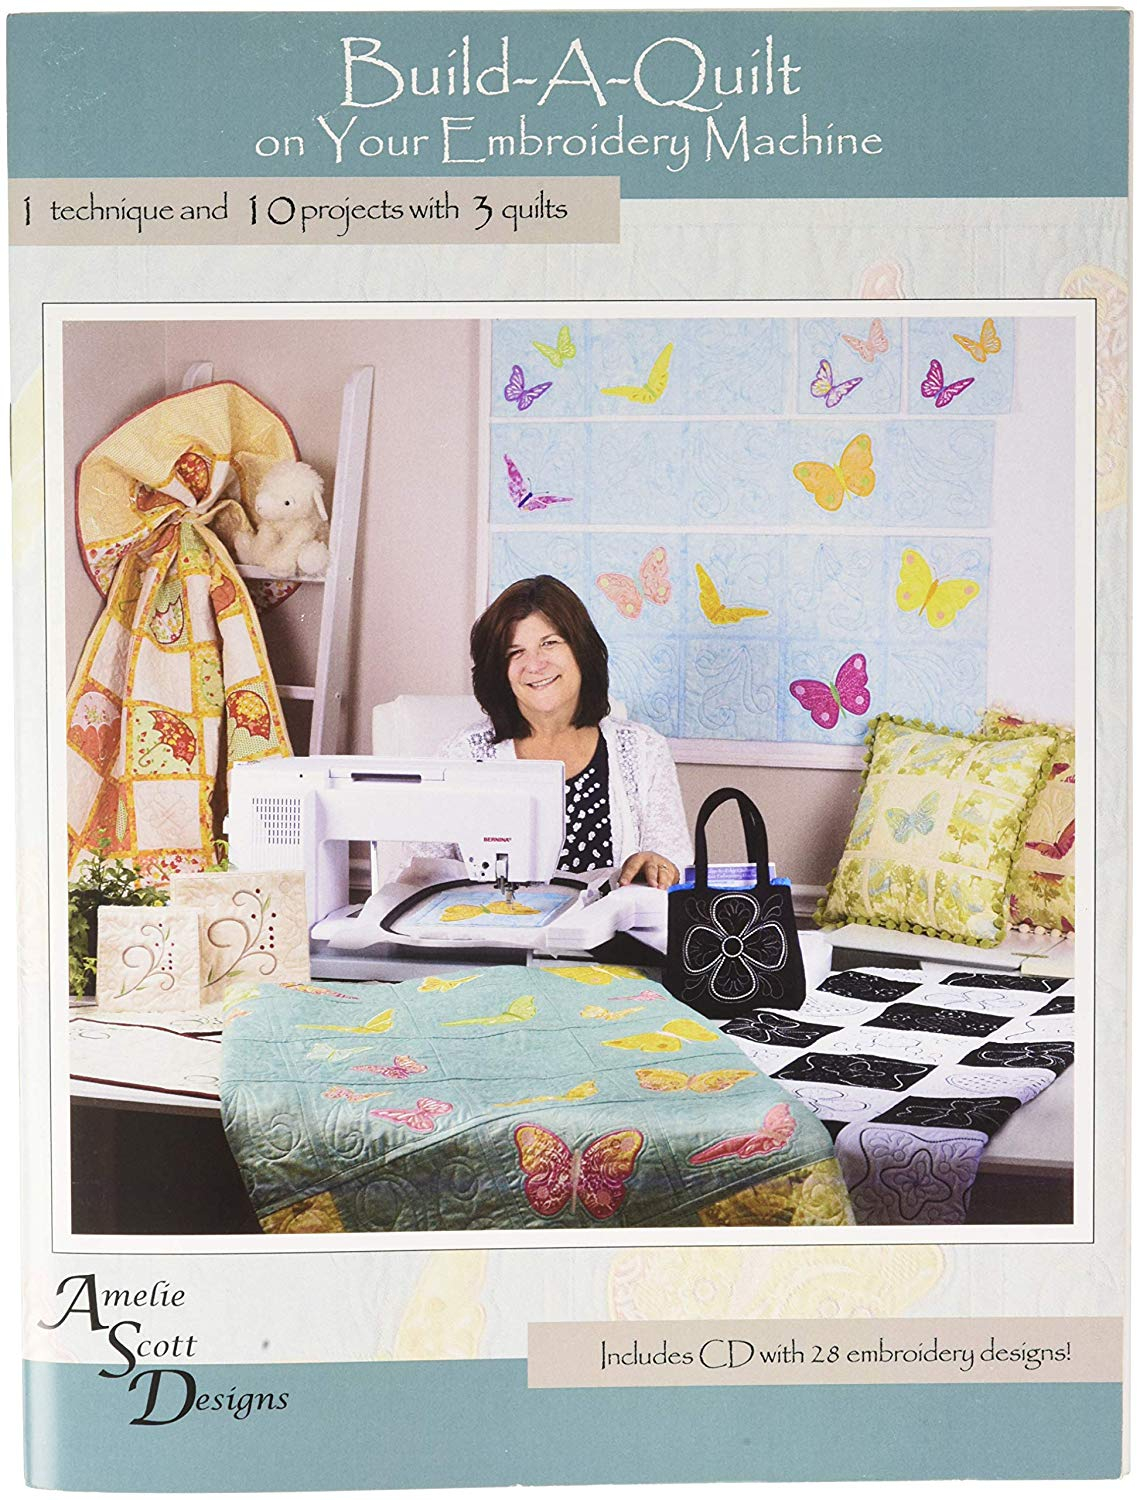 Patterns For Embroidery Machine Build A Quilt Embroidery Machine Design Patterns Cd 10 Projects 3 Quilt Pattern